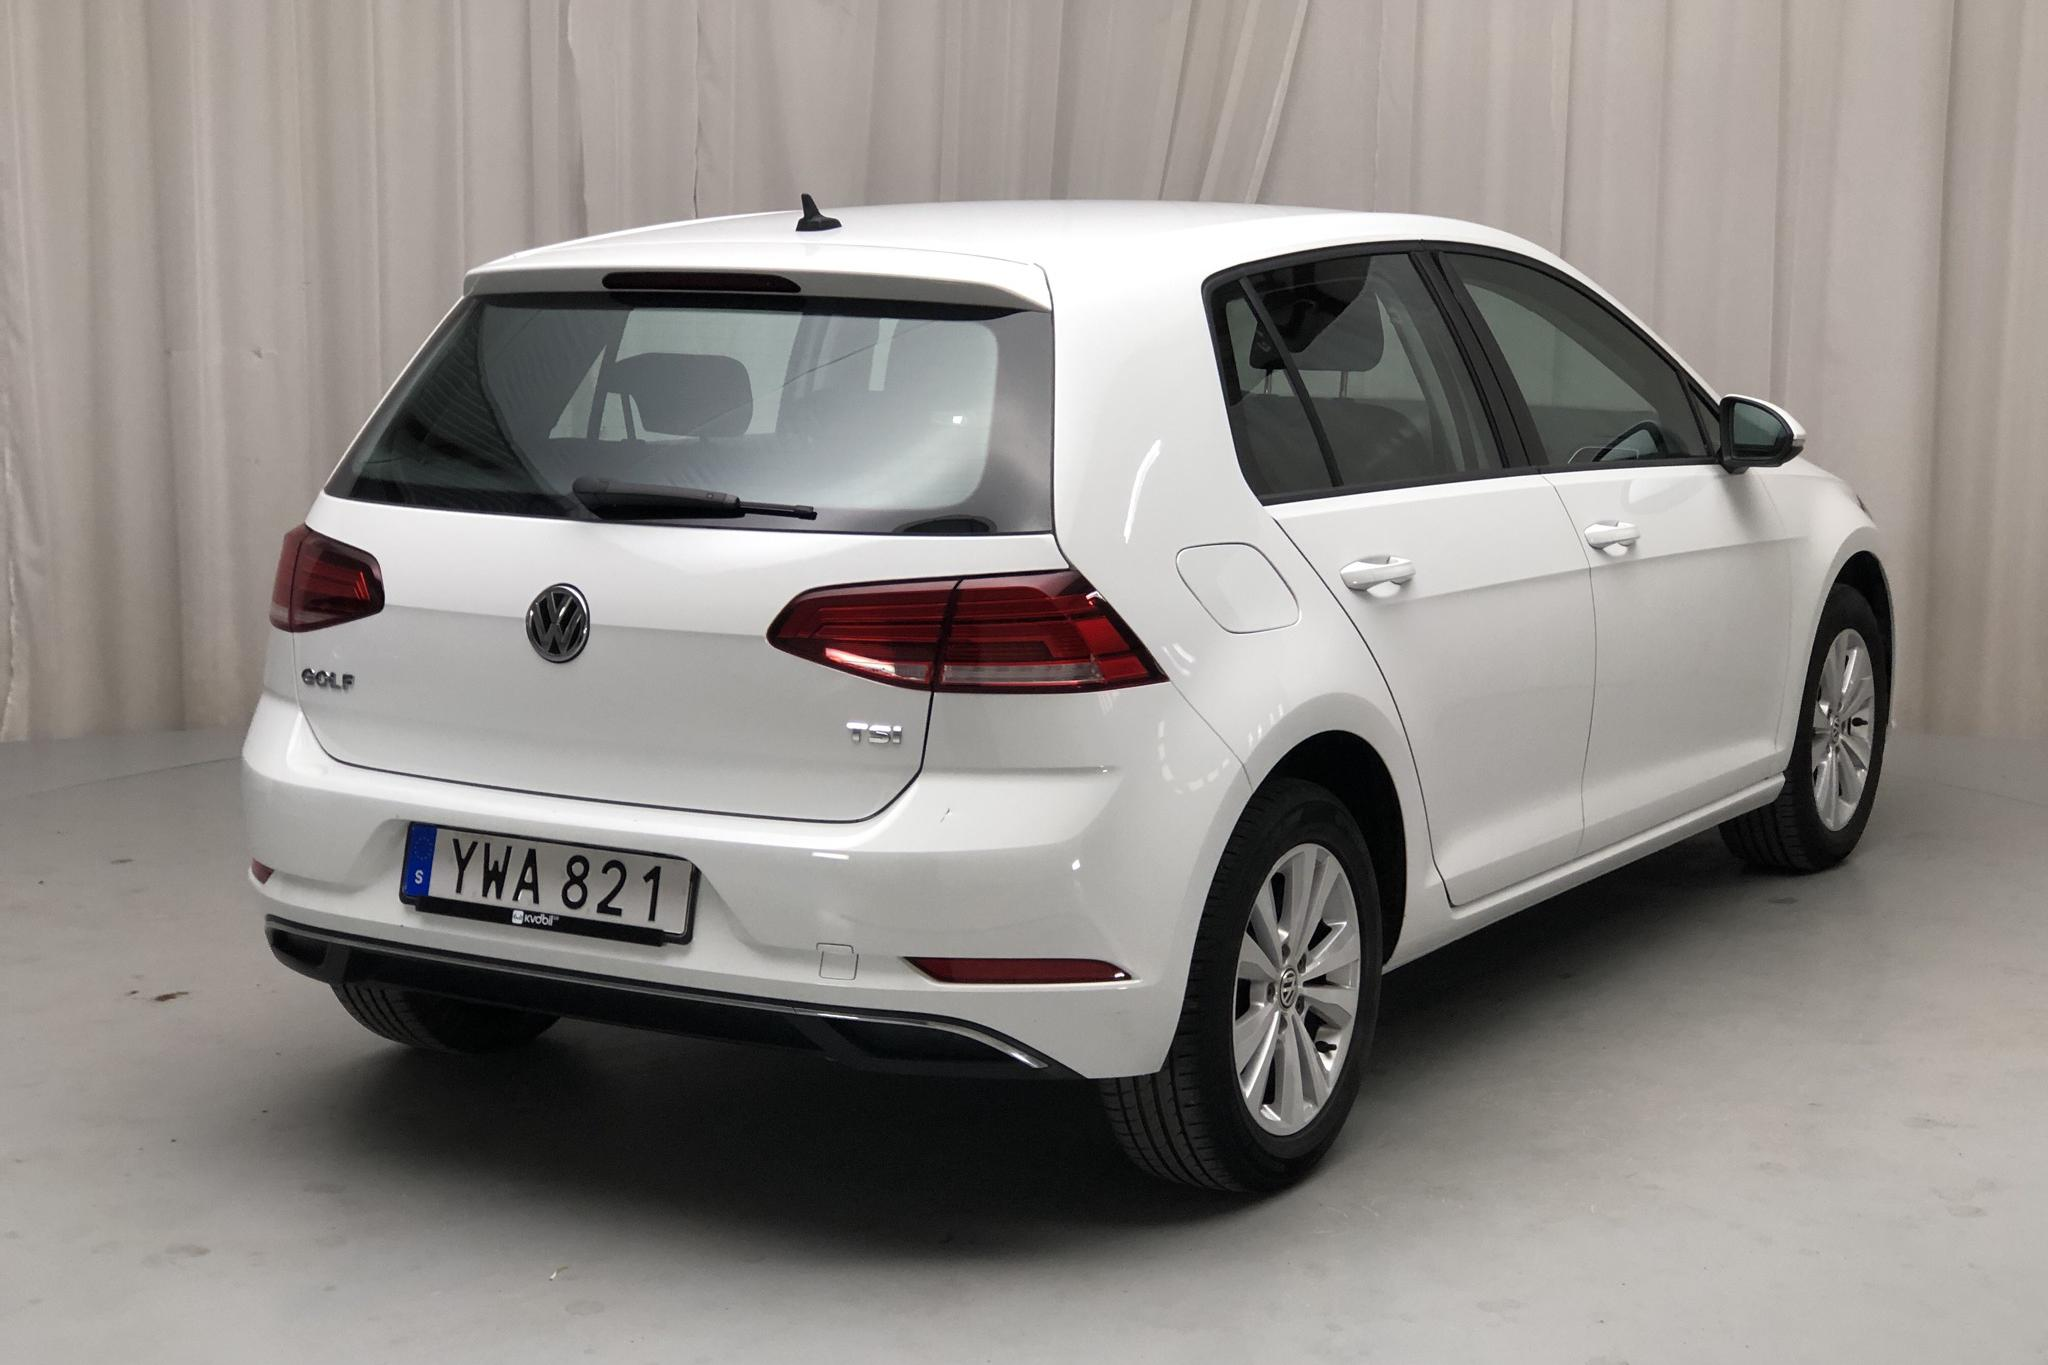 VW Golf VII 1.0 TSI 5dr (110hk) - 46 160 km - Manual - white - 2018